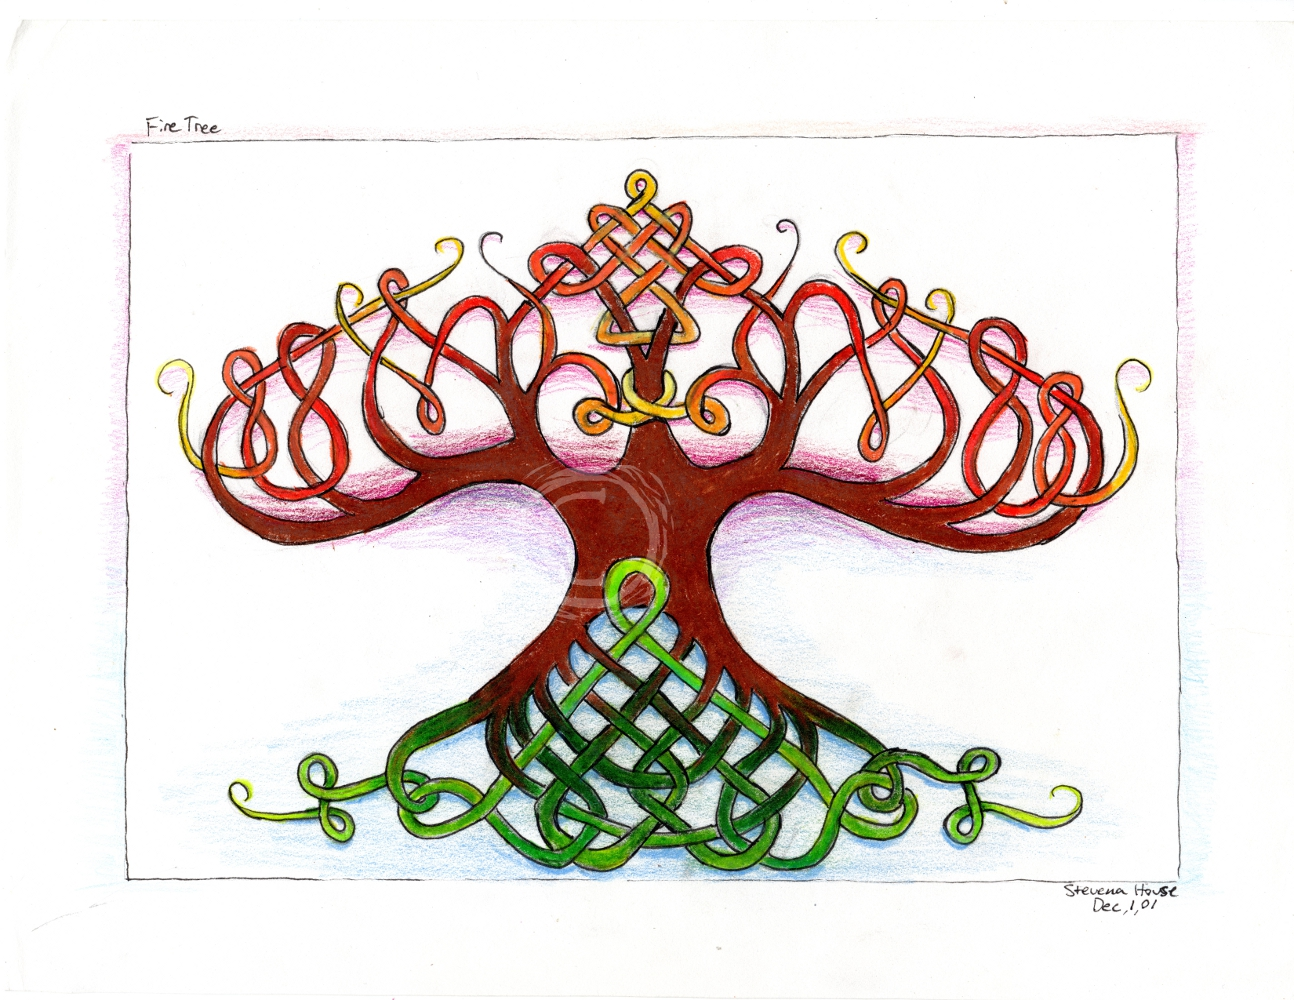 Inspired by the Celtic and Nordic knot art traditions, this drawing depicts a tree with interconnected green roots and intertwining autumn colored branches. Color Pencil and Ink on Paper